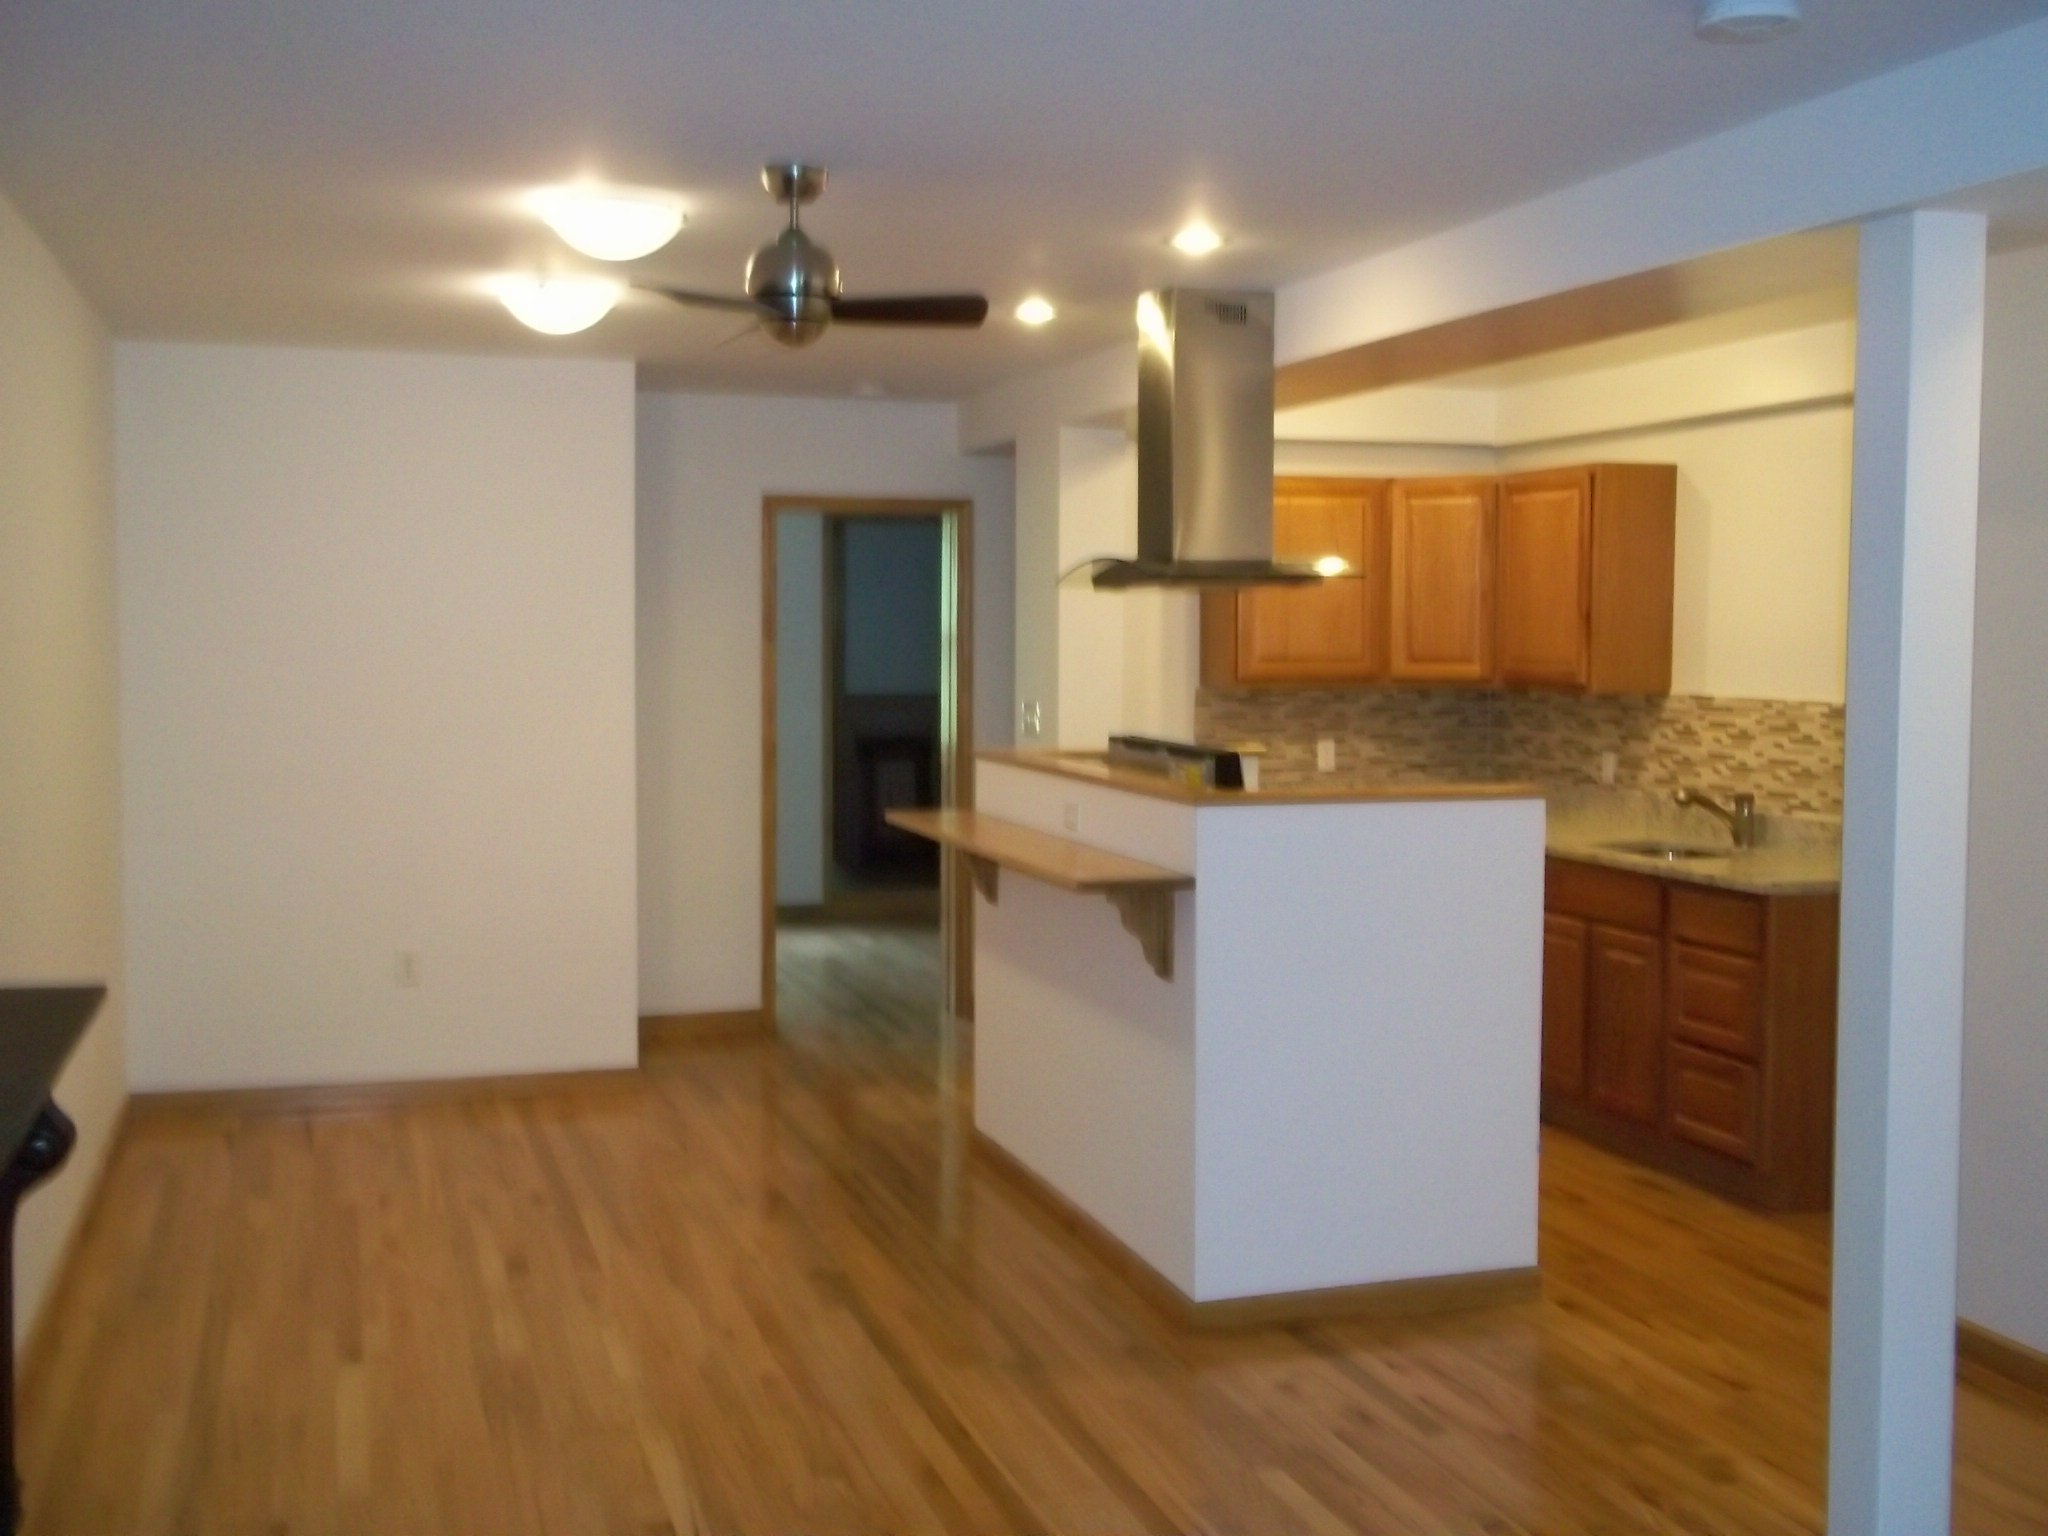 1 bedroom apartments for rent stuyvesant heights 1 bedroom apartment for rent 17913